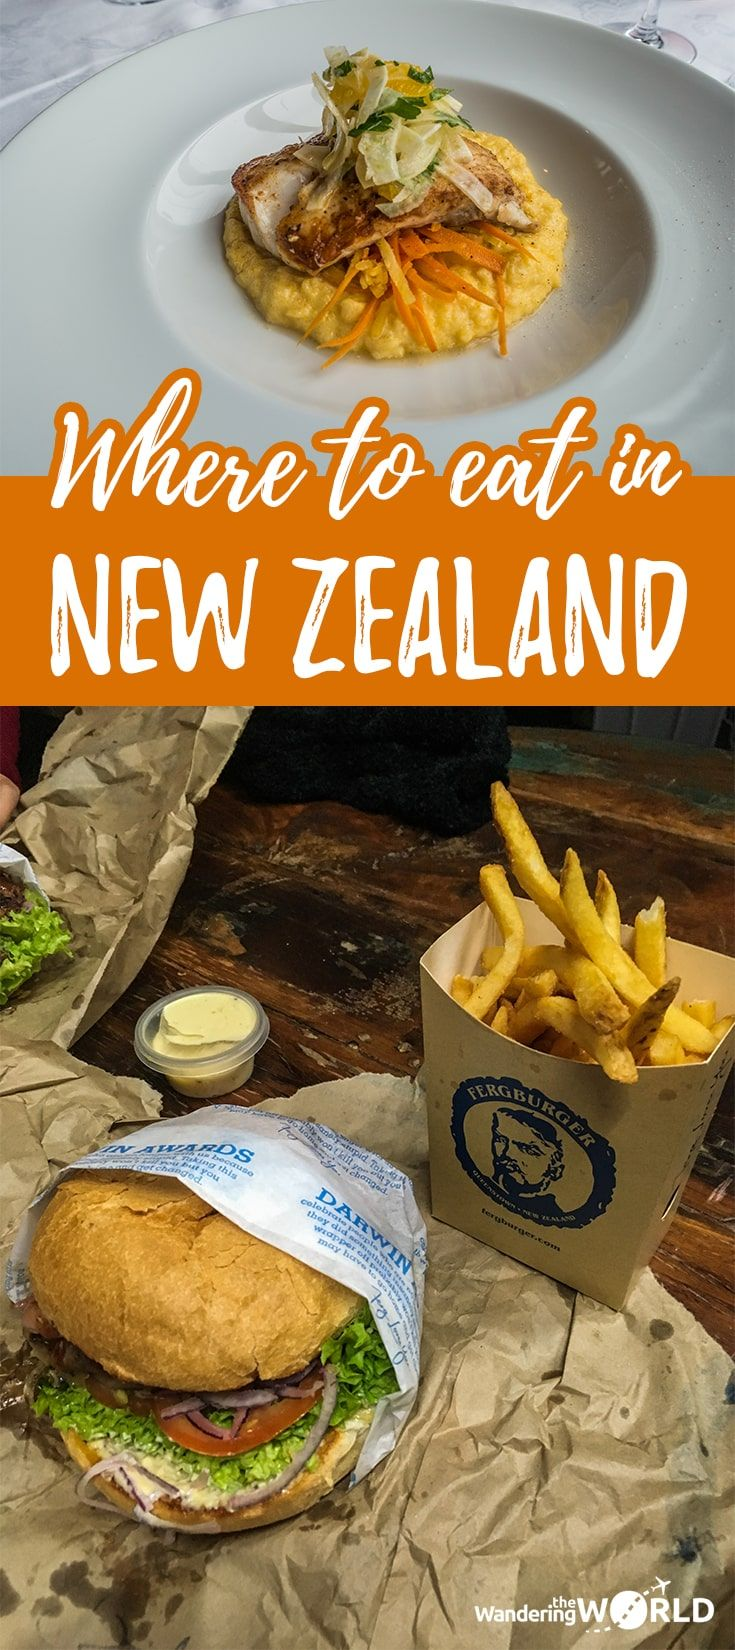 What And Where To Eat In New Zealand In 2020 New Zealand Food New Zealand Cuisine New Zealand Travel